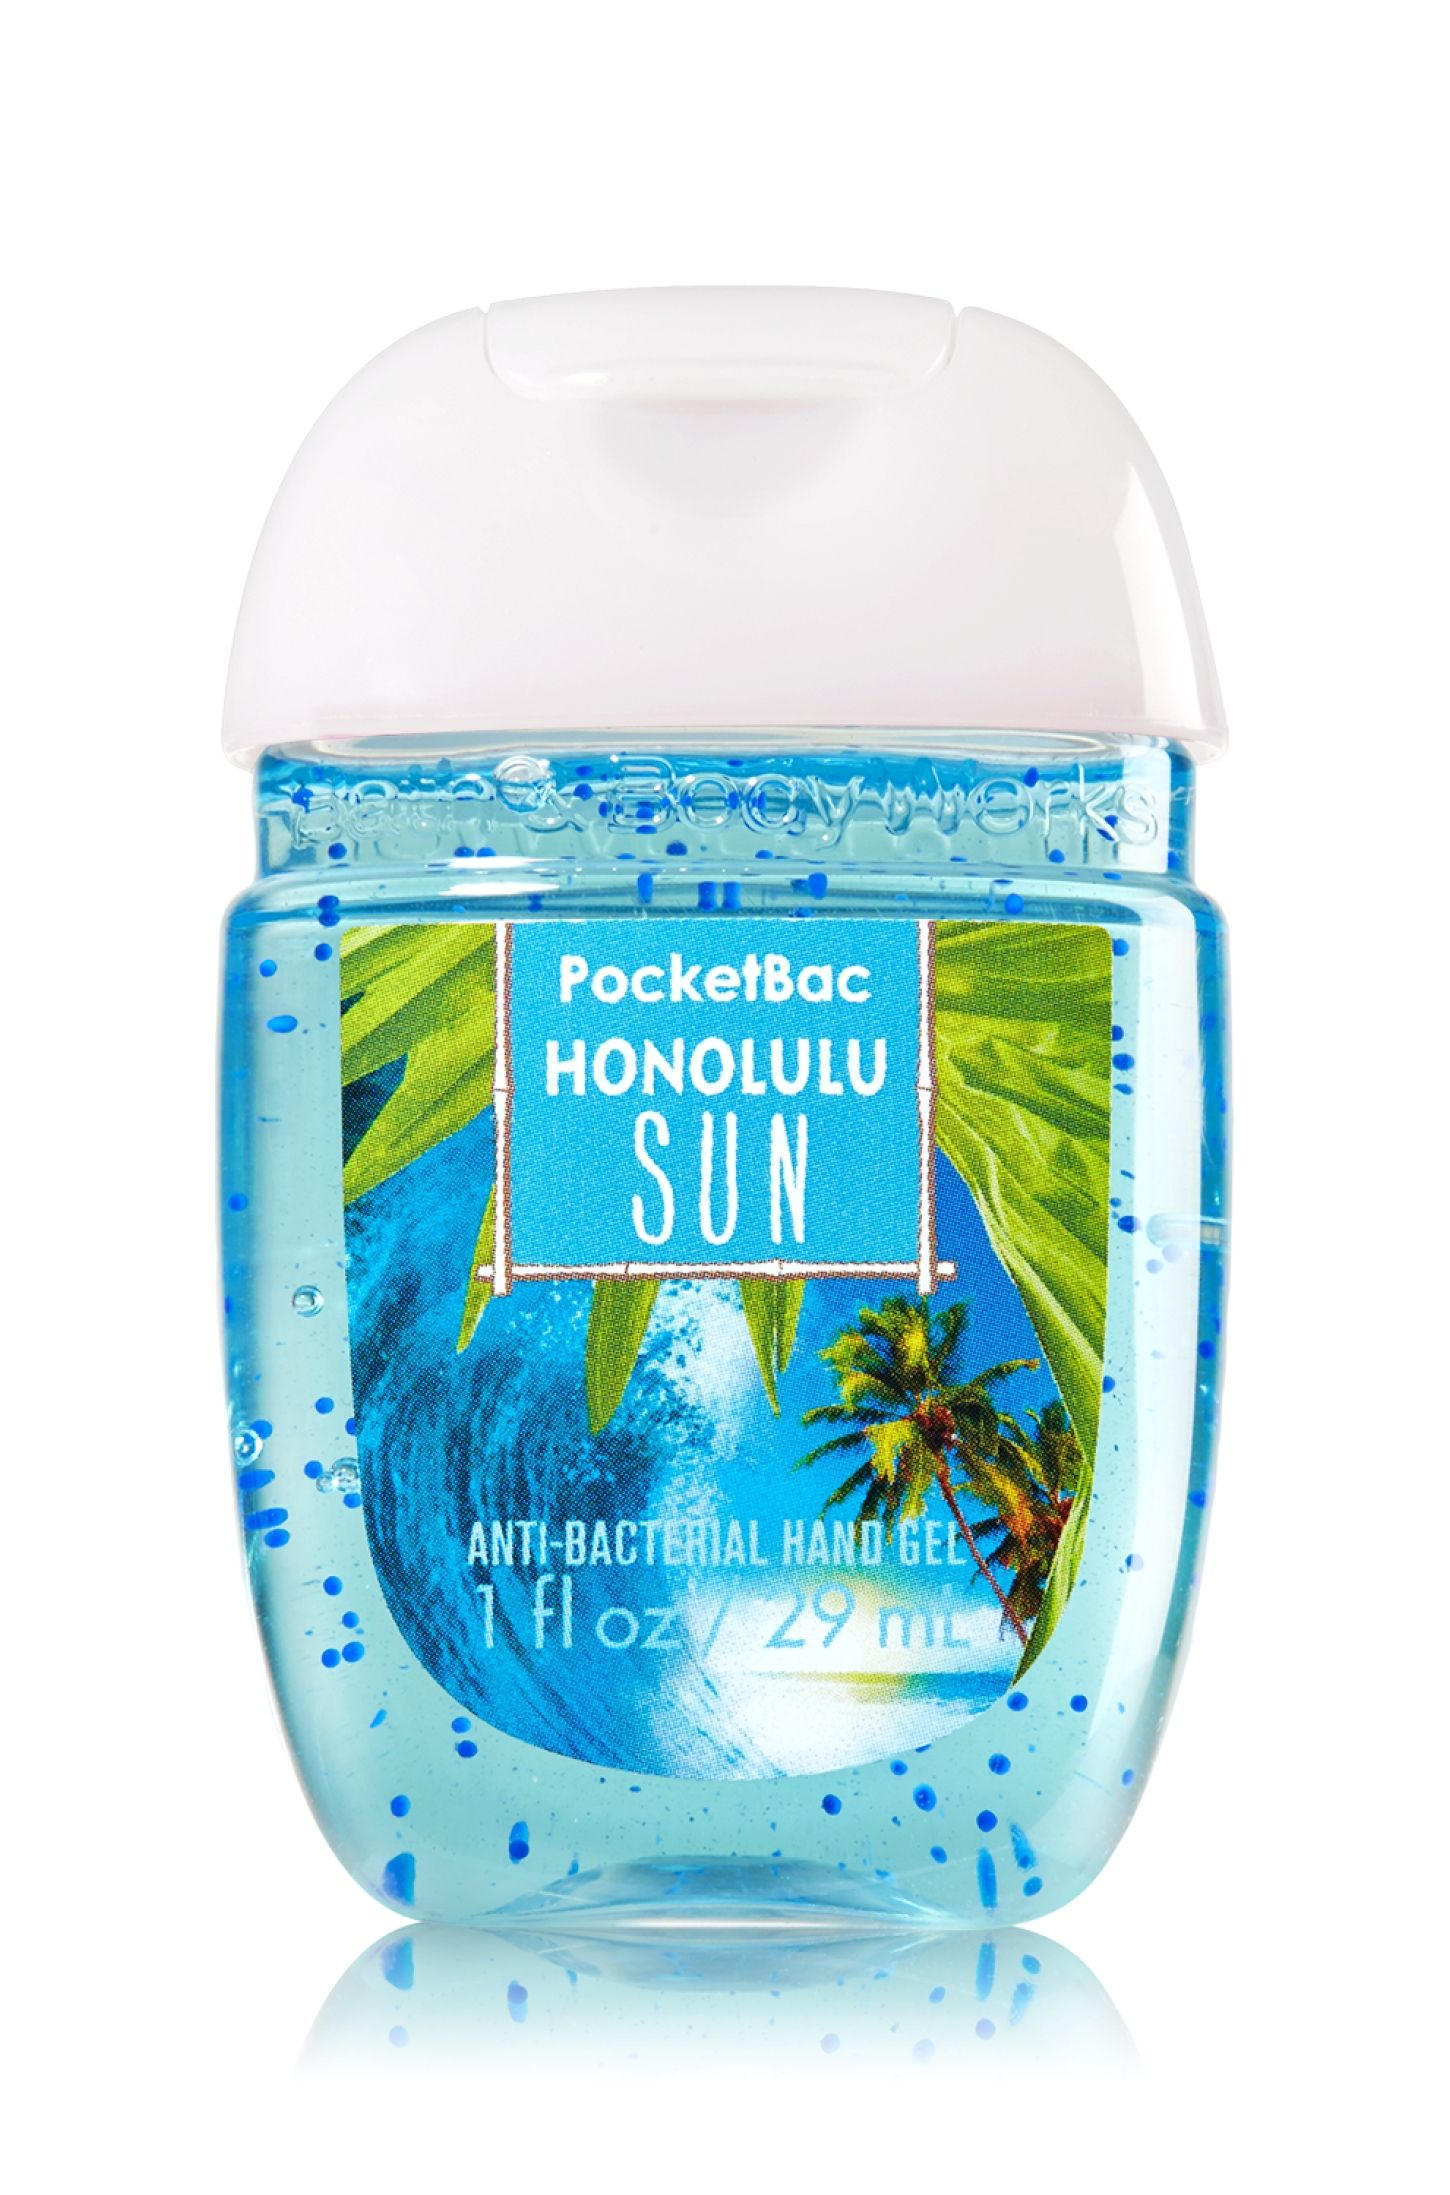 Honolulu Sun Pocketbac Sanitizing Hand Gel Soap Sanitizer Bath